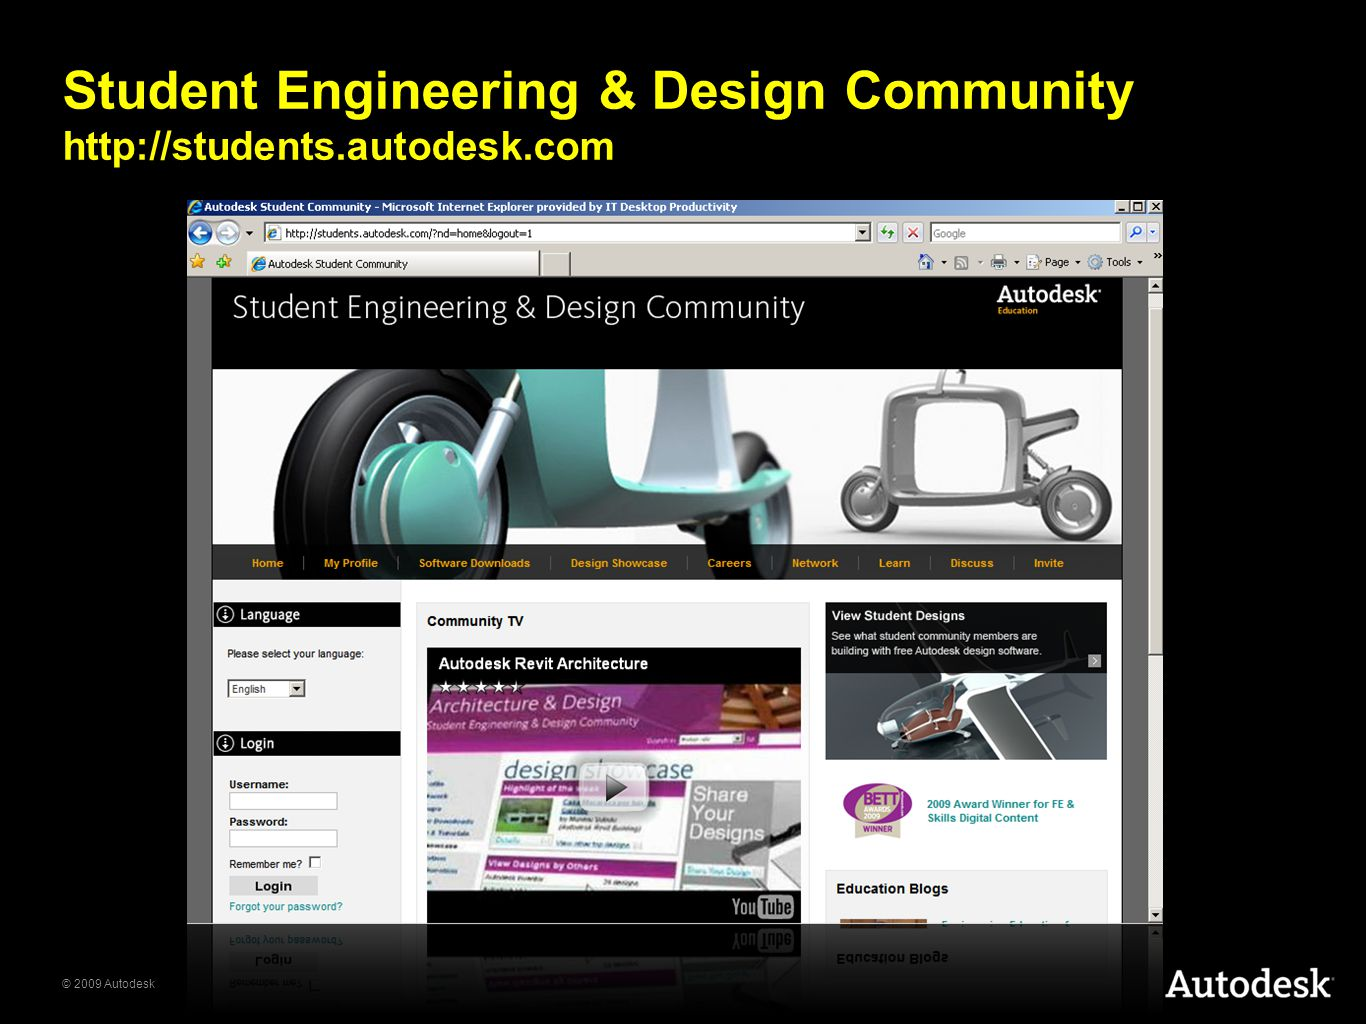 © 2009 Autodesk Student Engineering & Design Community http://students.autodesk.com